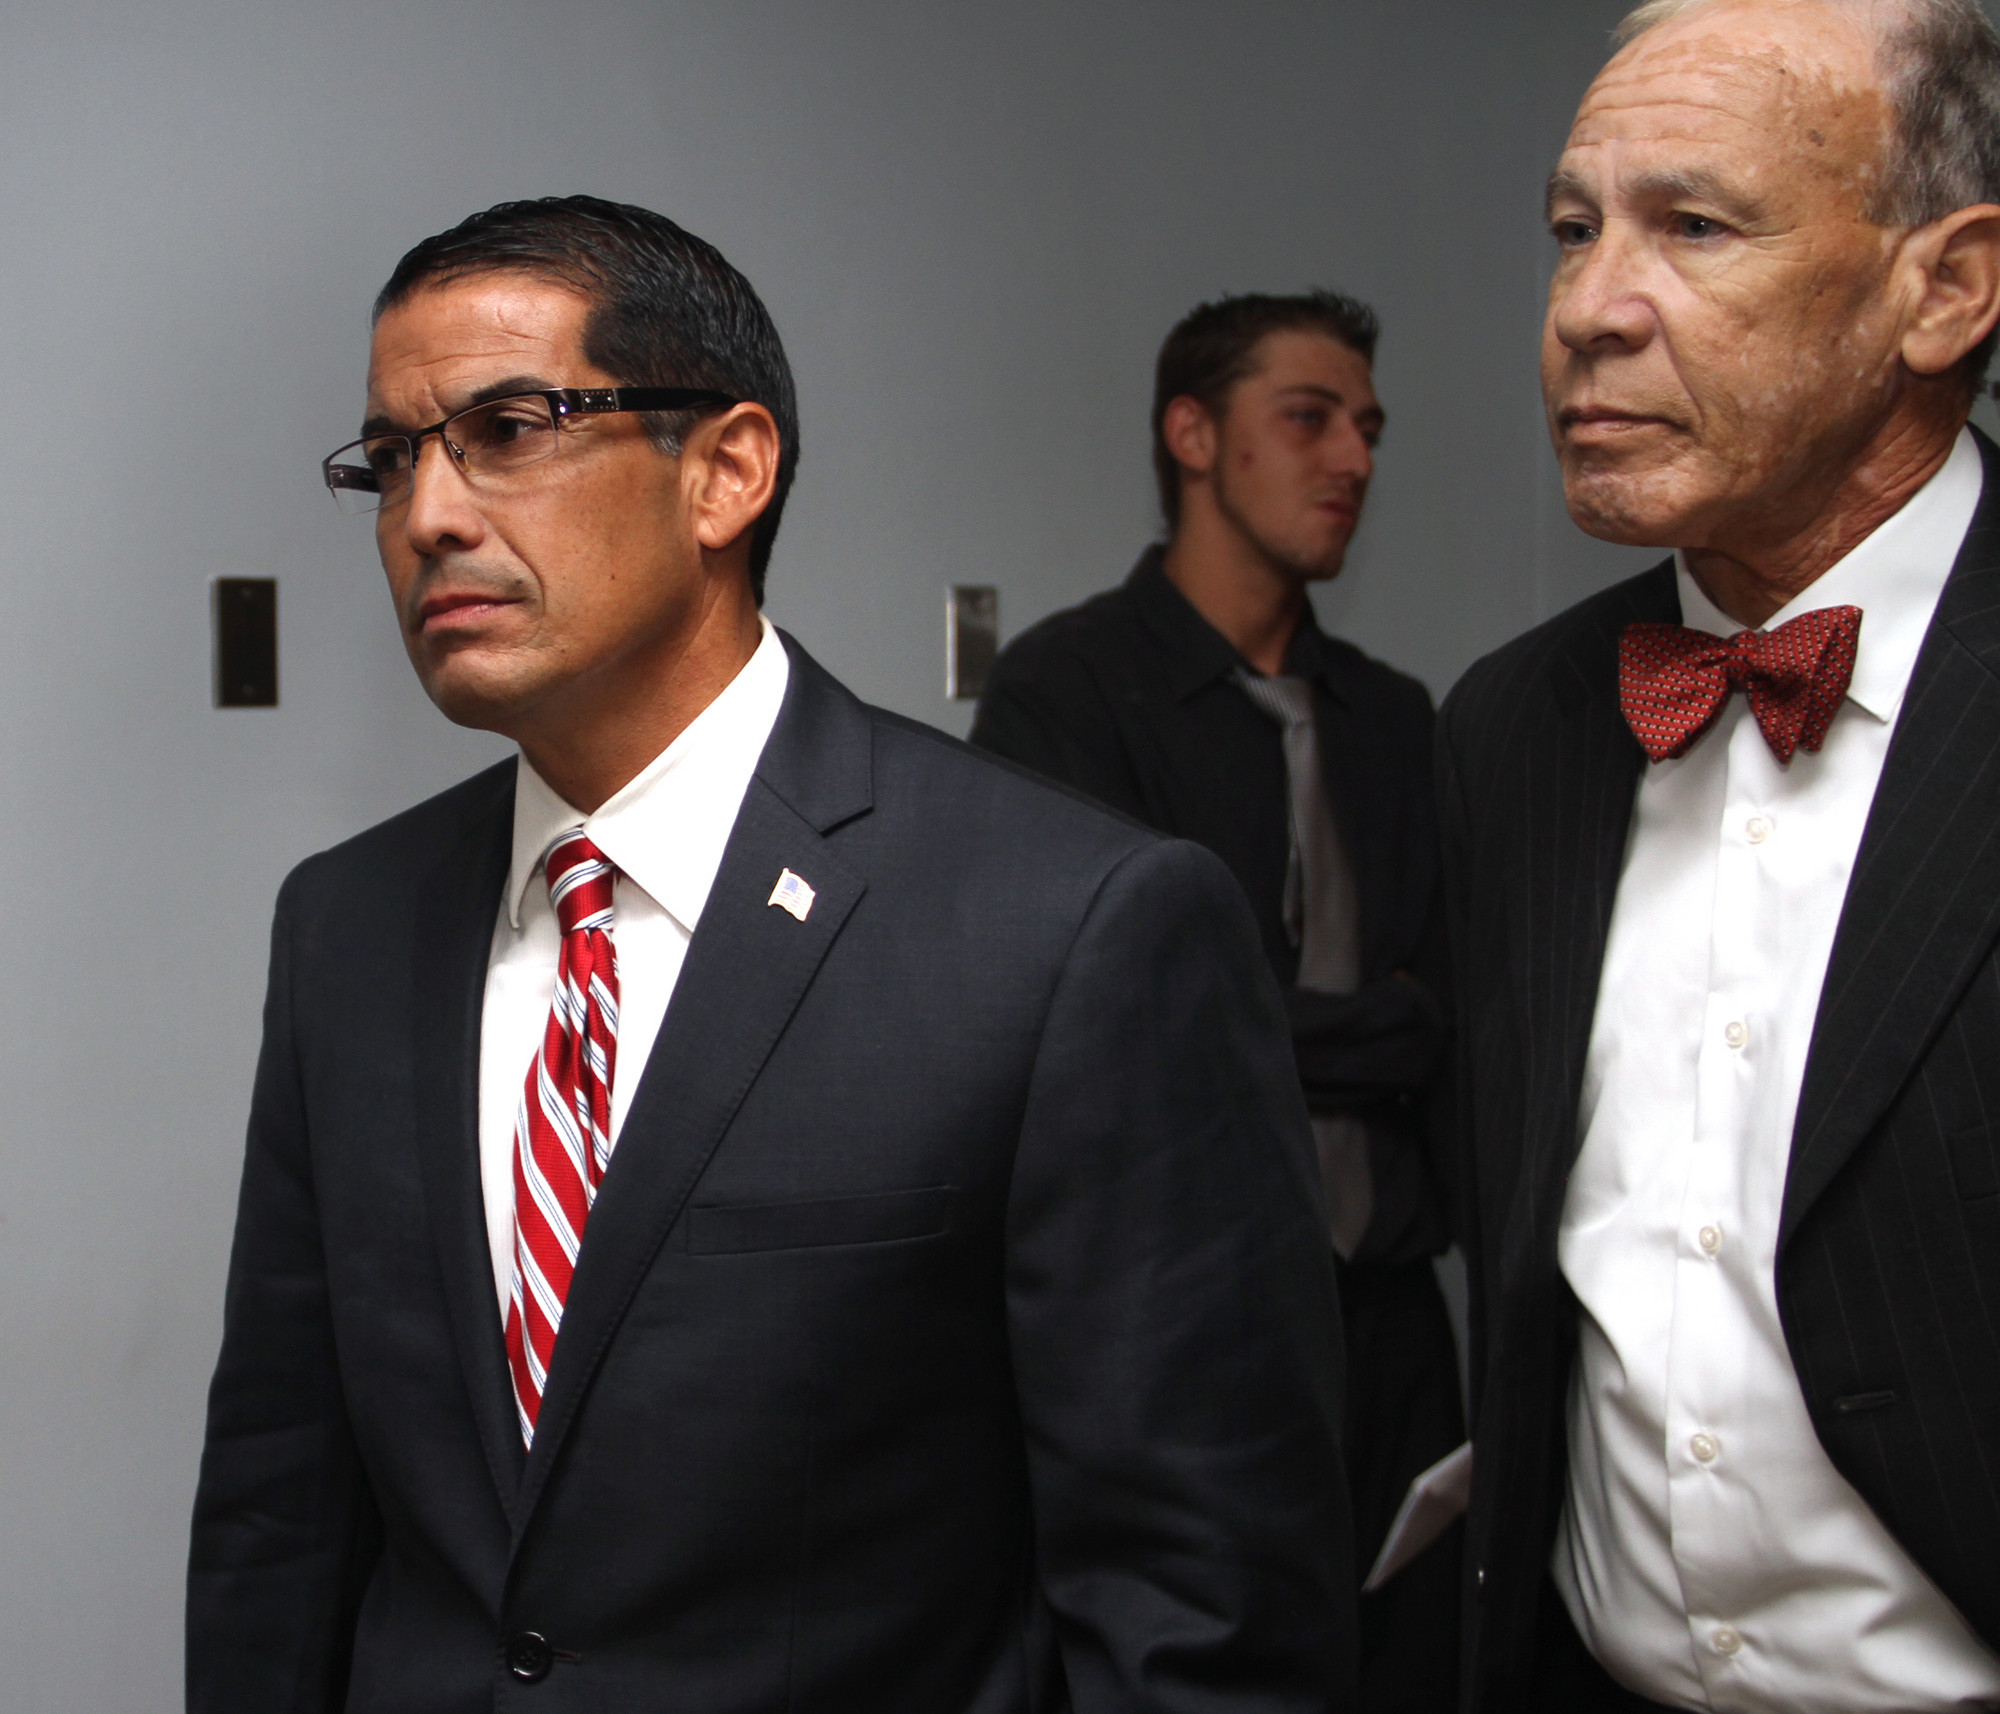 Mark Bonilla and his attorney, Adrian DiLuzio, from left, left First District Court in July after hearing Justice Sharon Gianelli issue her verdict in Bonilla's criminal case.